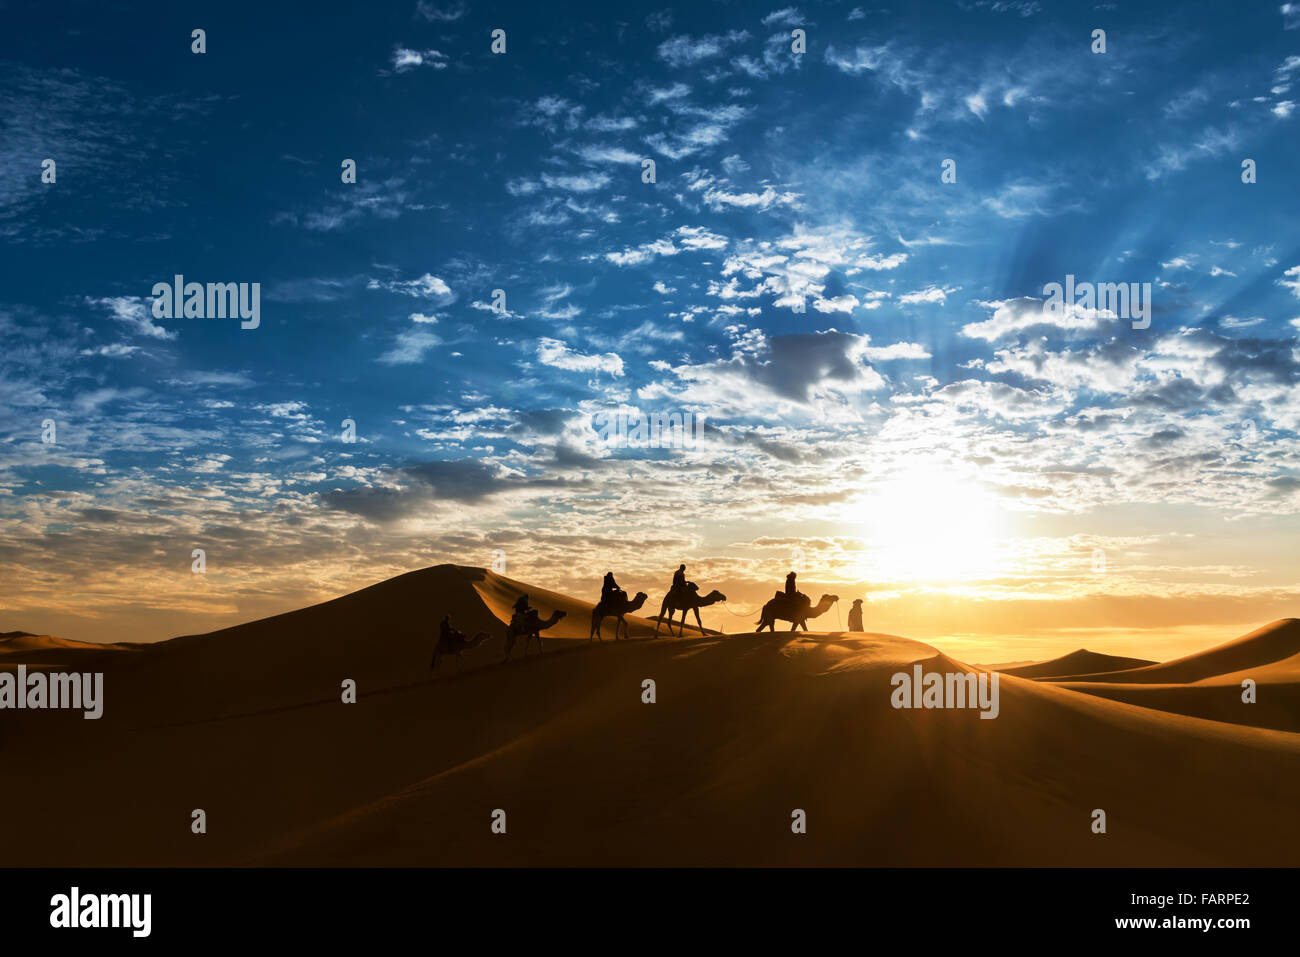 Caravan in the desert during sunrise against a beautiful cloudy sky. - Stock Image